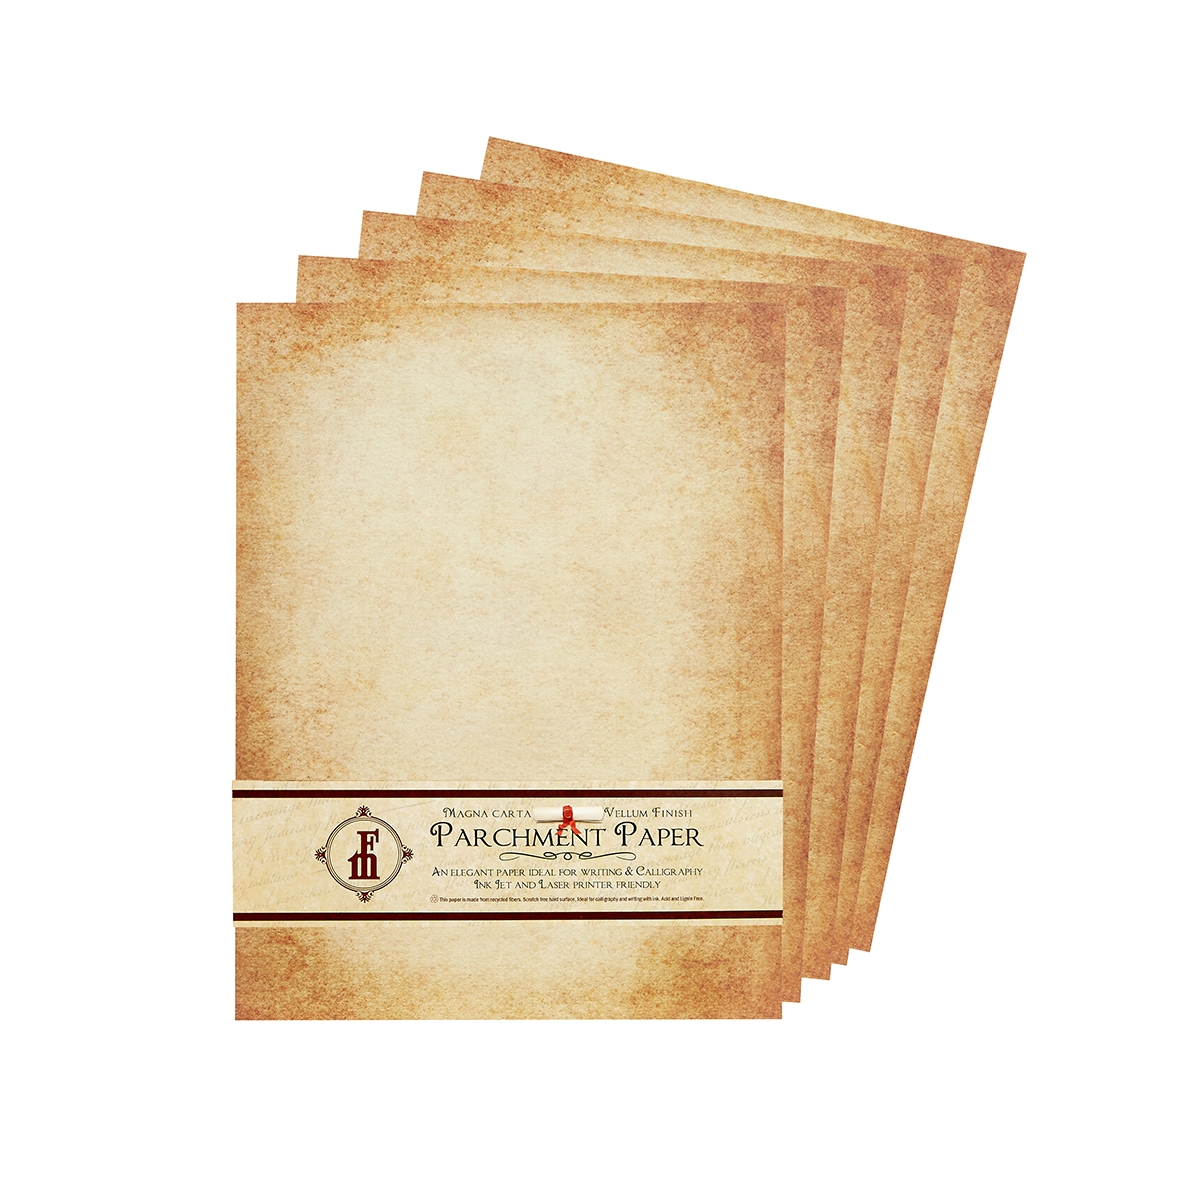 aged parchment stationery paper